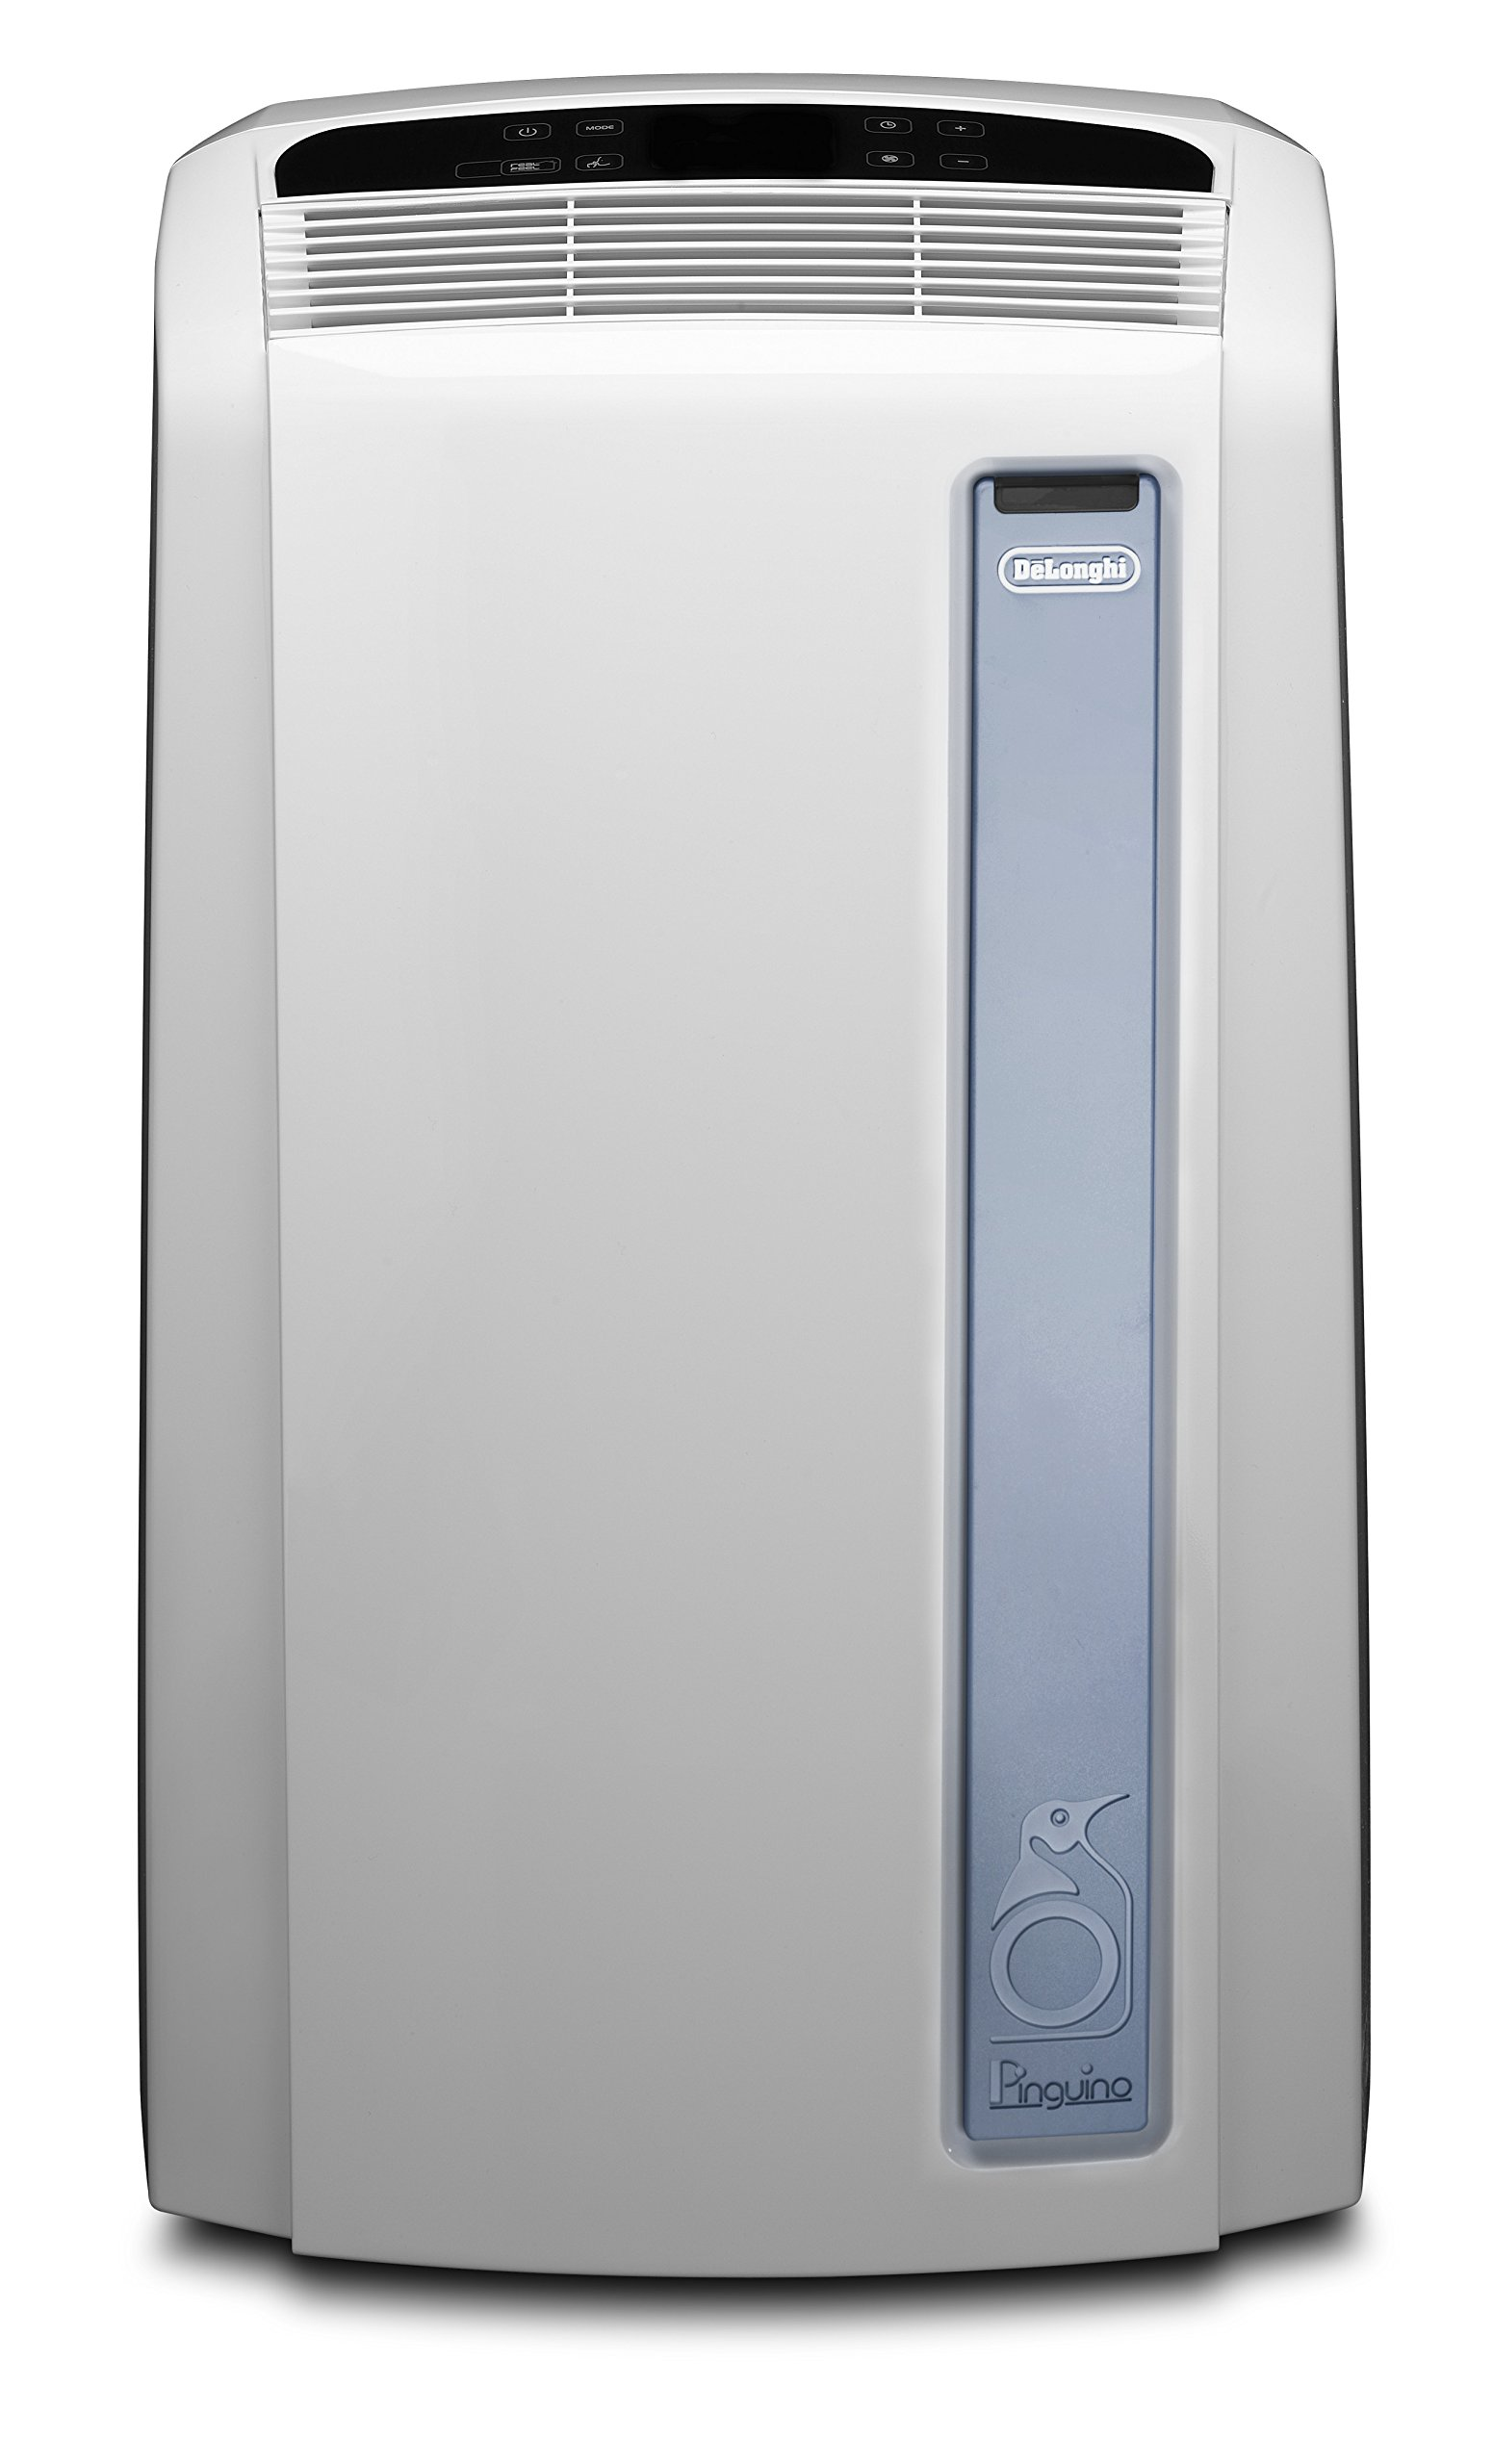 De'Longhi PAC AN97 Pinguino Luft-Luft System Real Feel Klimagerät / A / Max Kühlleistung 2.700 kW/ 10.700 BTU/h / weiß / mobil / Separate Entfeuchtungsfunktion product image